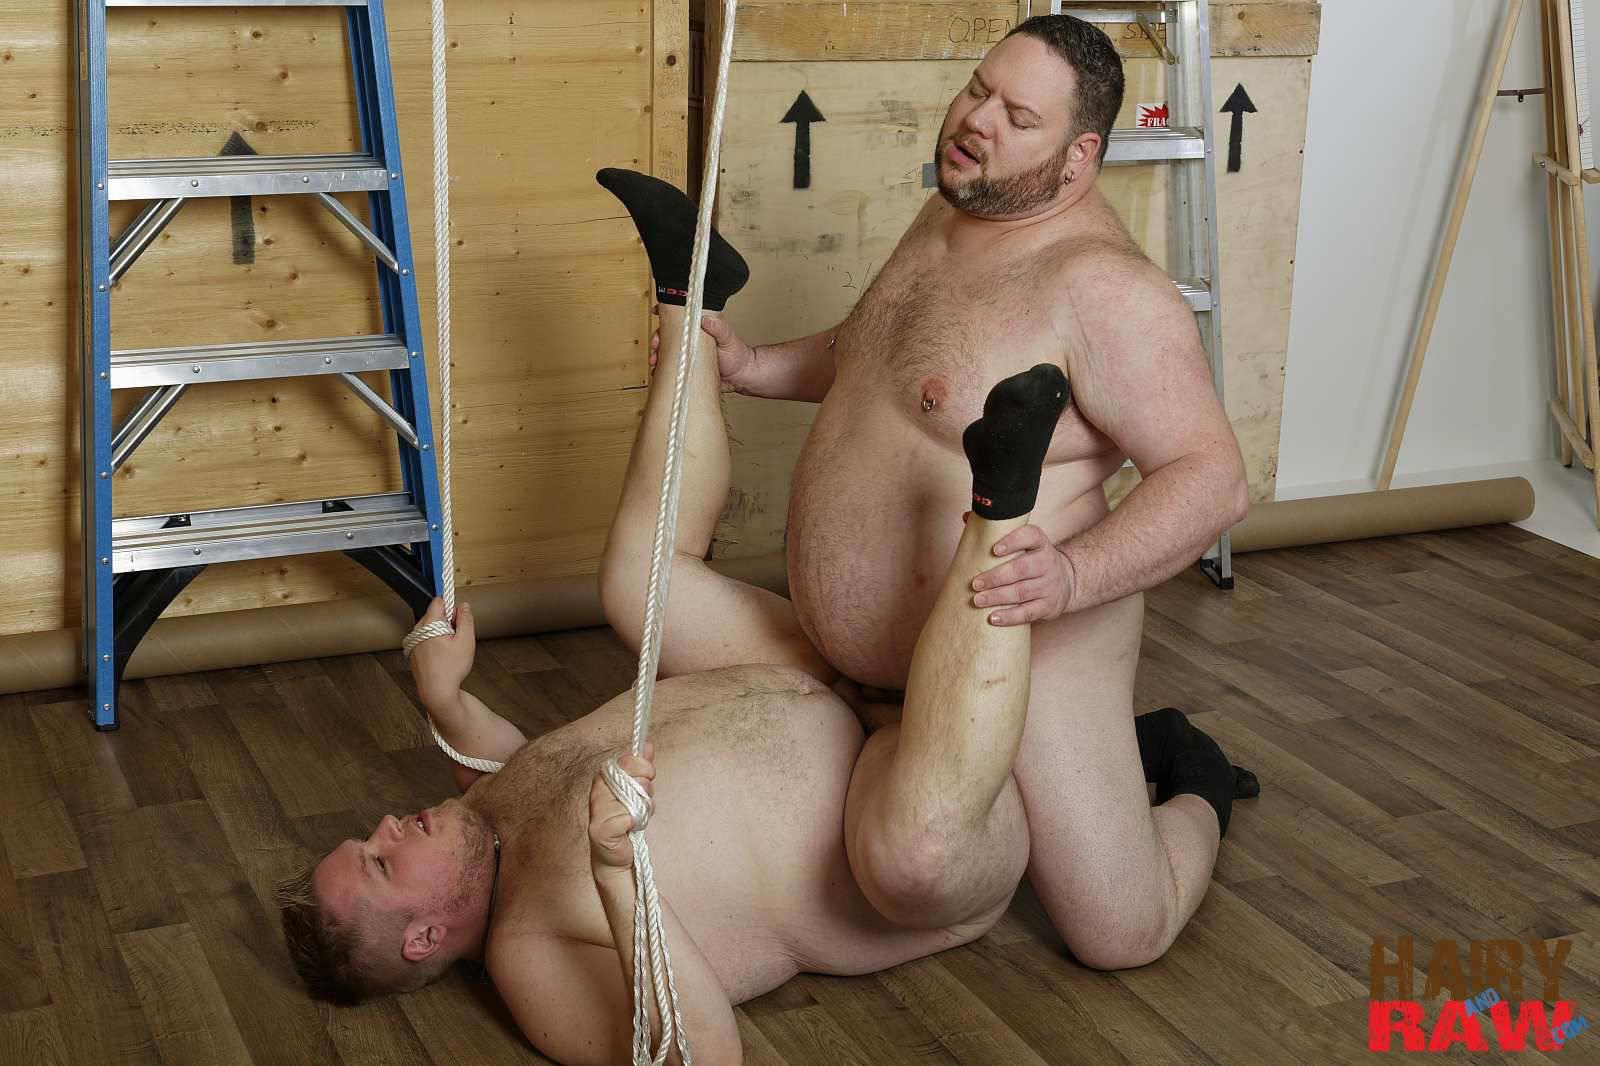 Hairy and Raw Bear Waters and Teddy Osborne Big Hairy Chubs Fucking Bareback Amateur Gay Porn 12 Super Chubs Fucking Bareback At The Warehouse